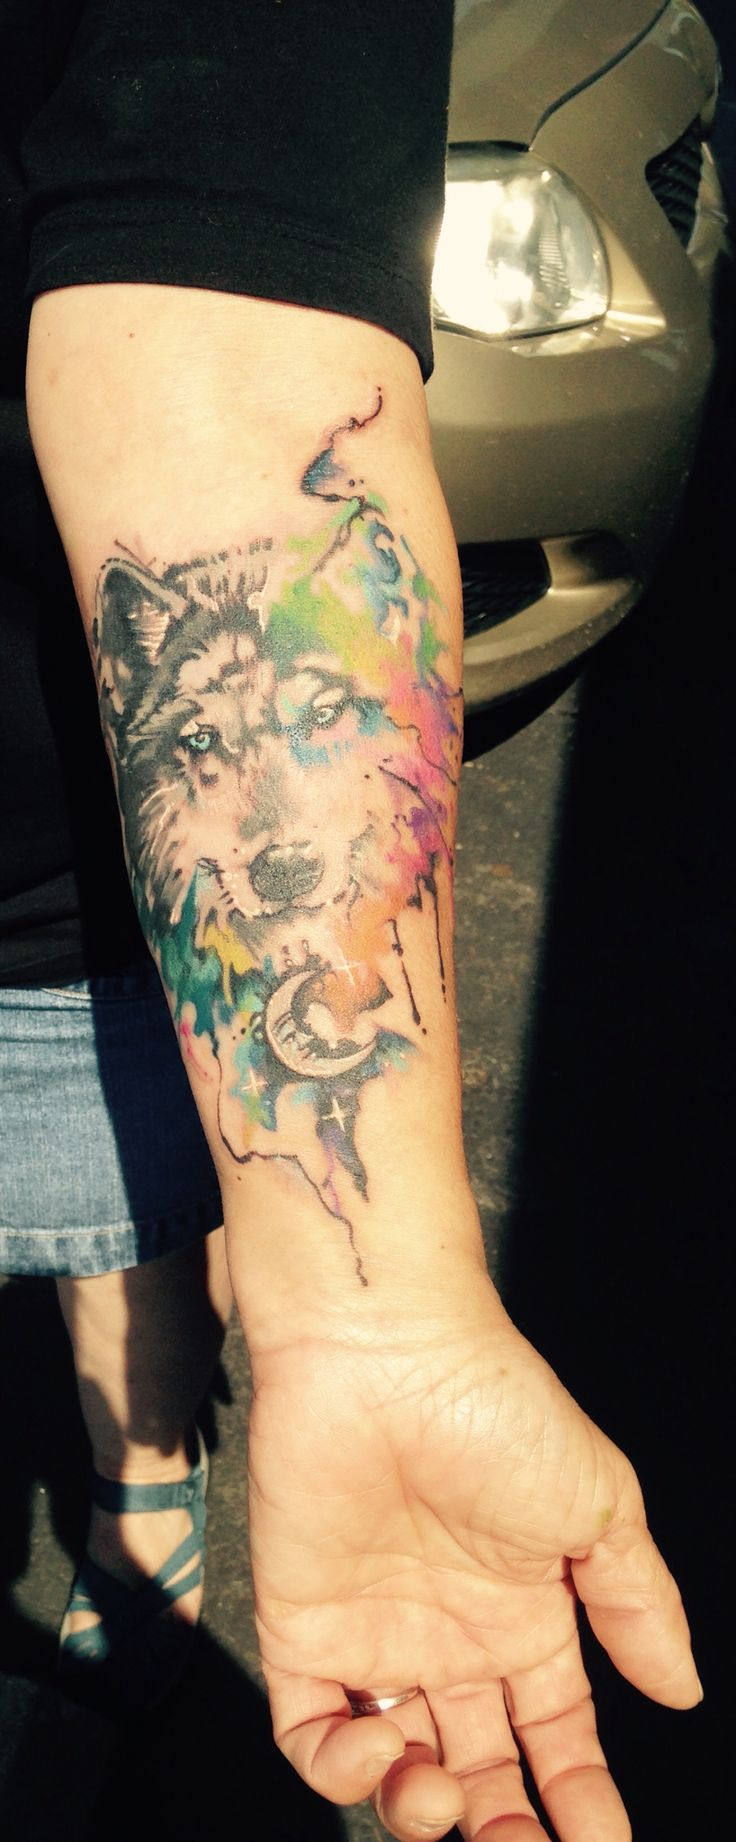 Amazing Watercolor Wolf Tattoo - Big Easy Tattoos at Wentzville, MO.....